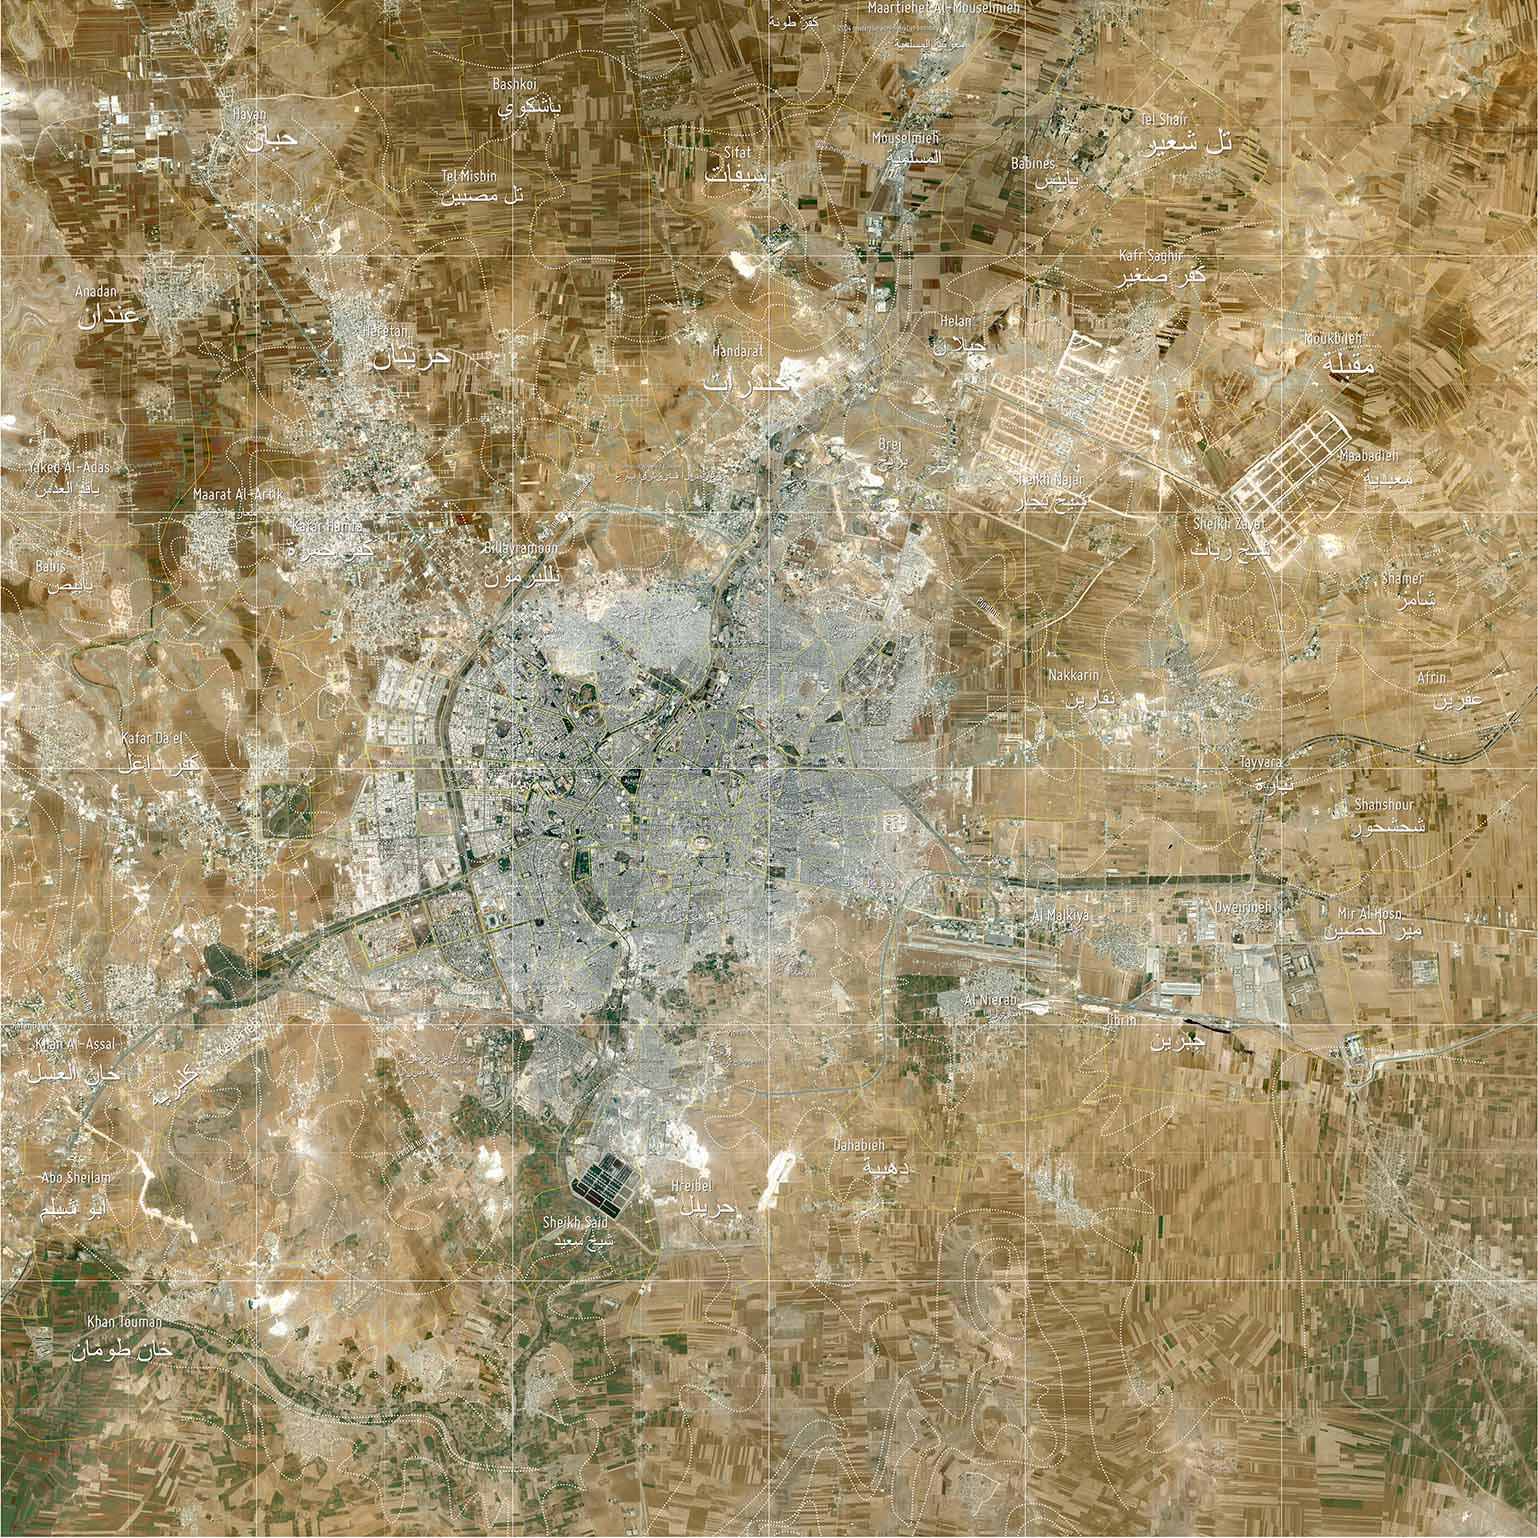 Aleppo Diverse | Open City